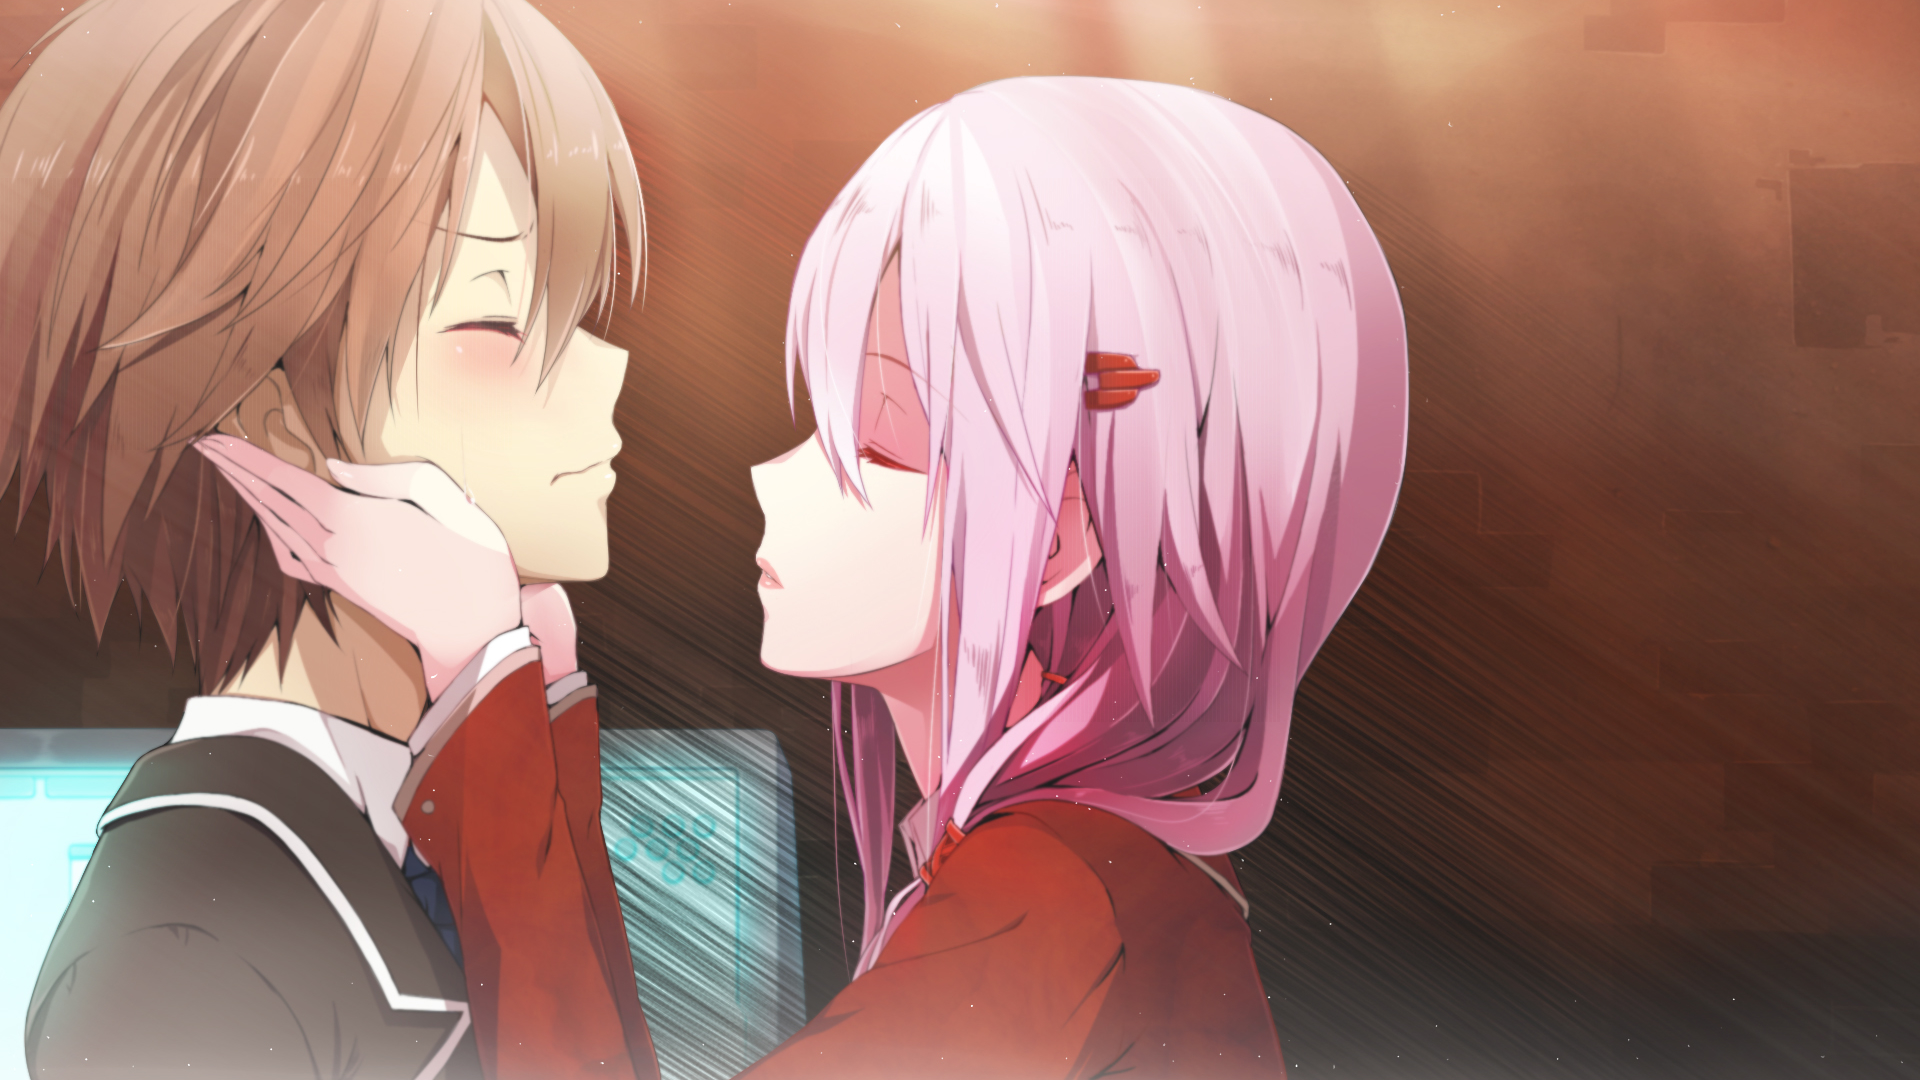 Cute Hugging Couples Wallpapers Guilty Crown Hd Wallpaper Background Image 1920x1080